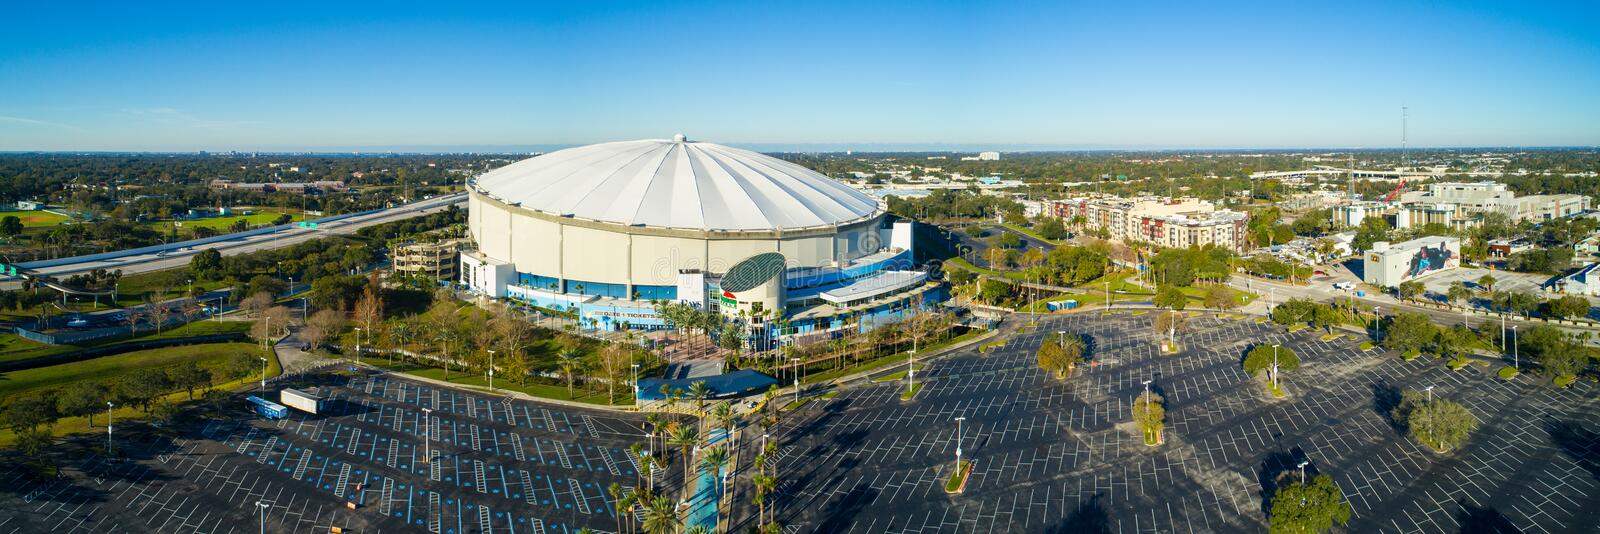 Aerial drone image Tropicana Field St Petersburg Florida USA stock images